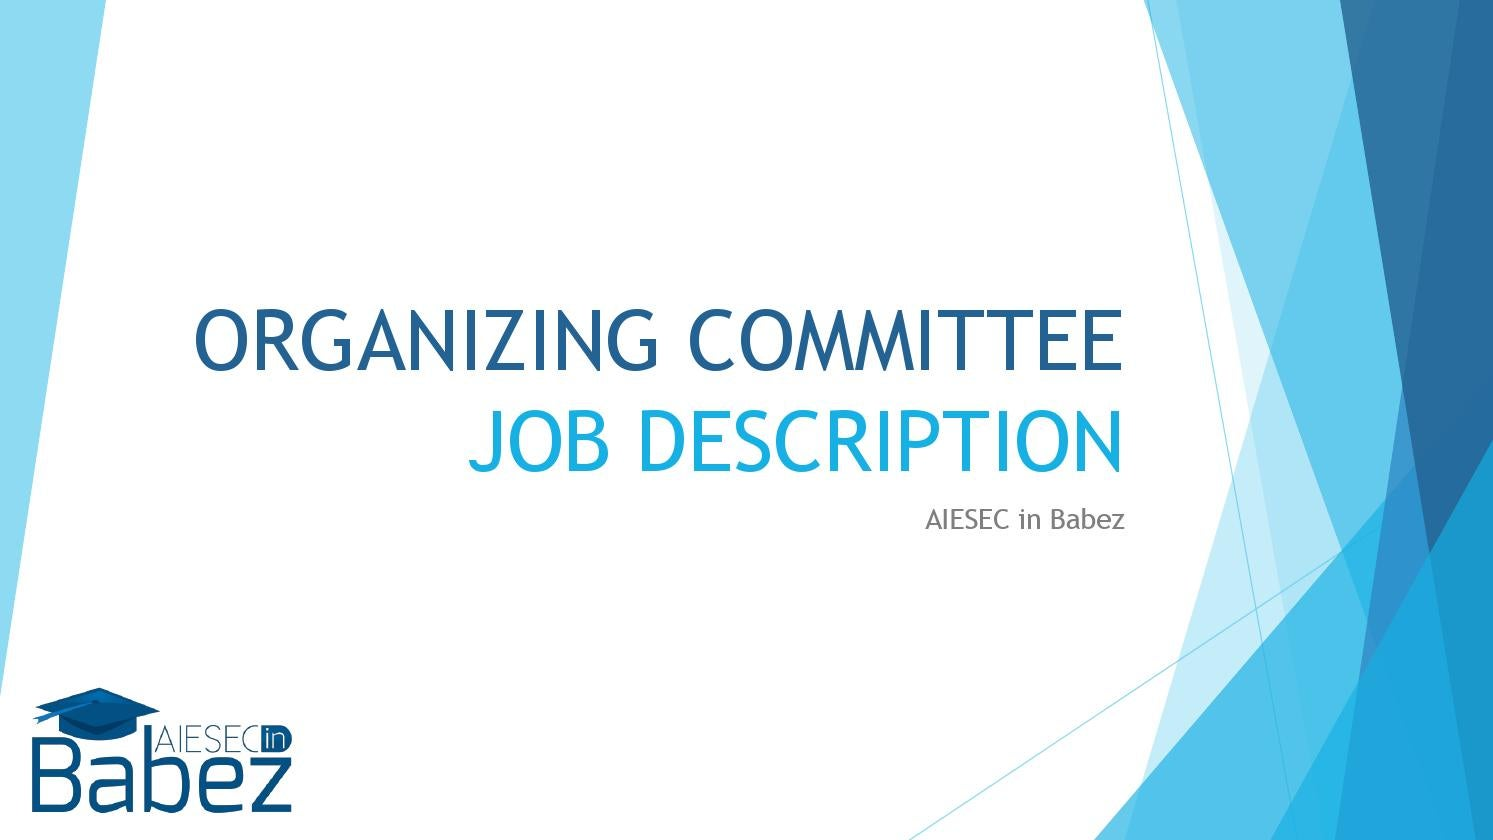 organizing committee job description by aiesec in babez